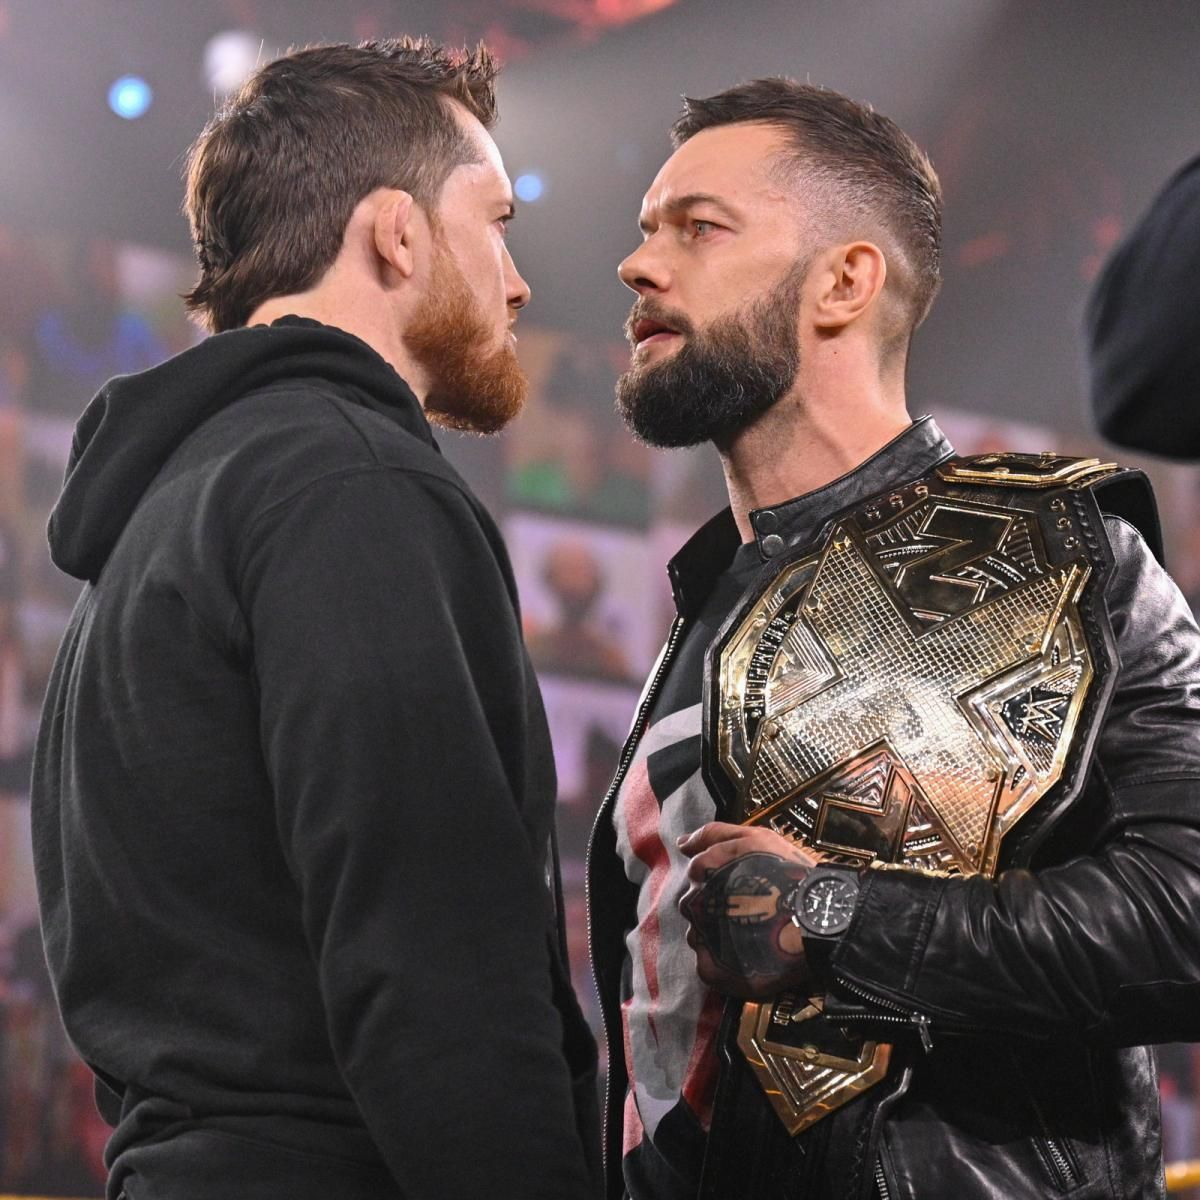 Photos Don T Miss These Incredible Images From Nxt S Final Episode Of 2020 In 2021 The Incredibles Photo Image